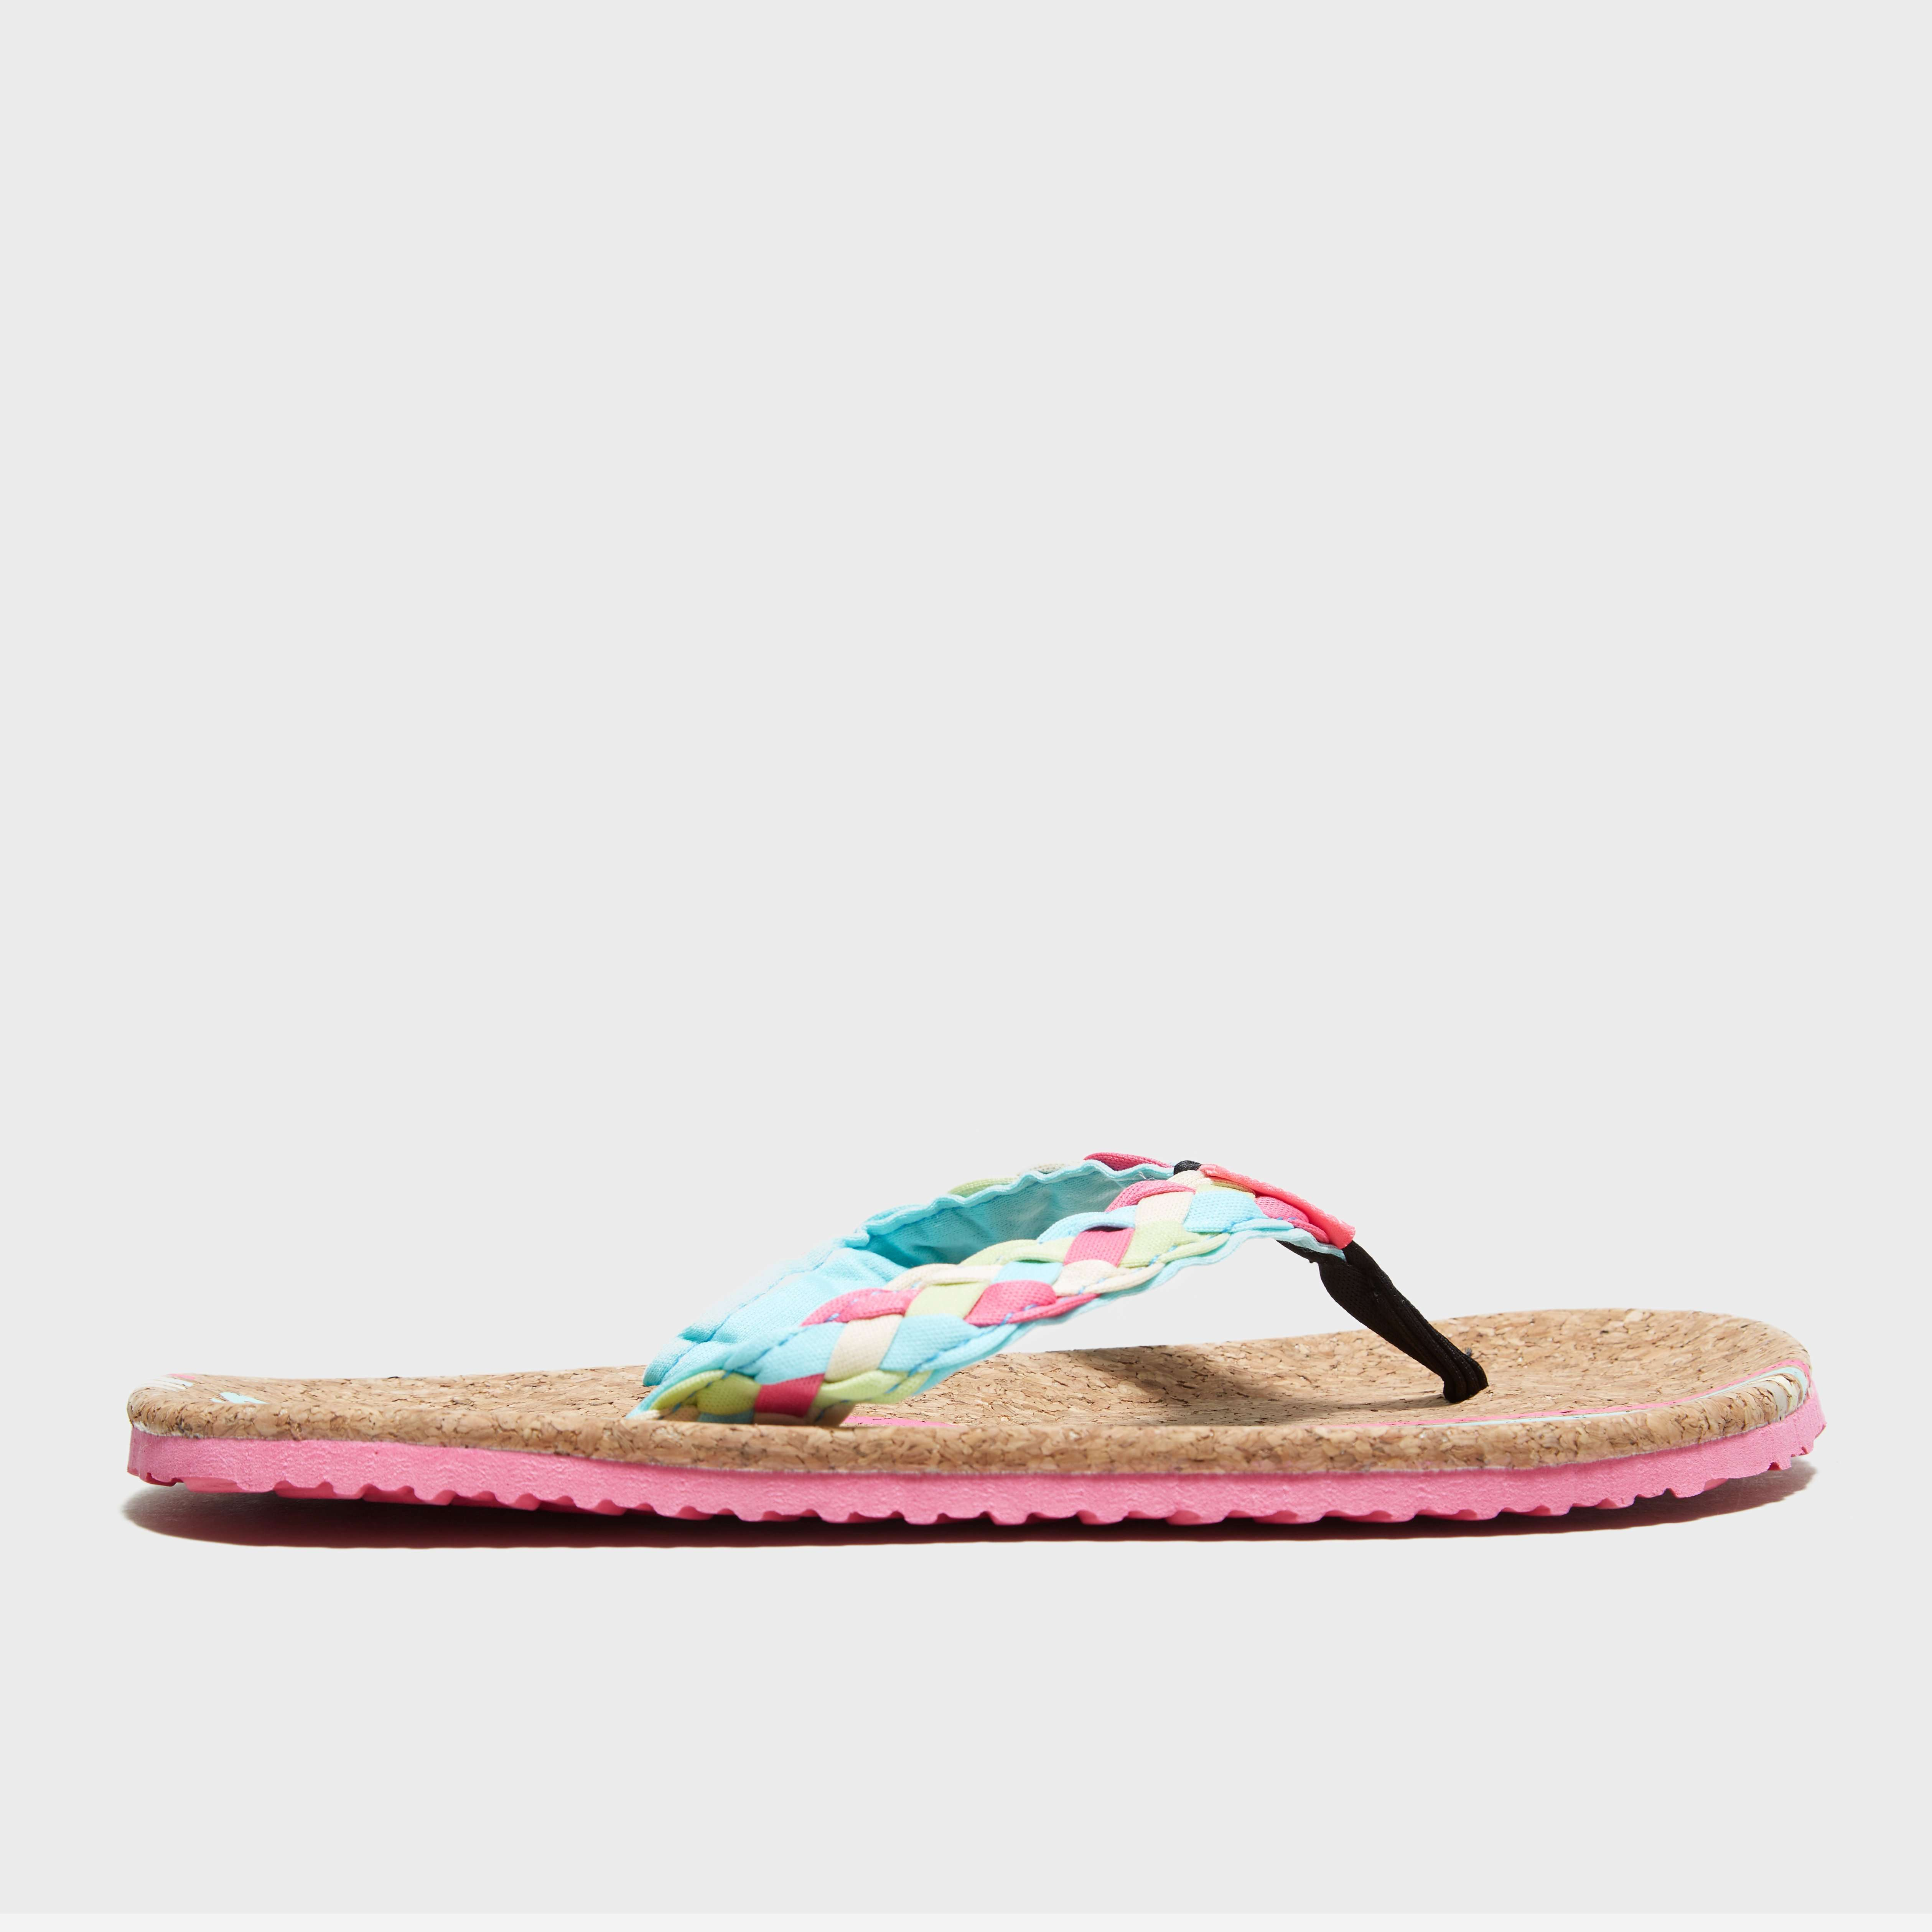 SINNER Women's Cork Sandal